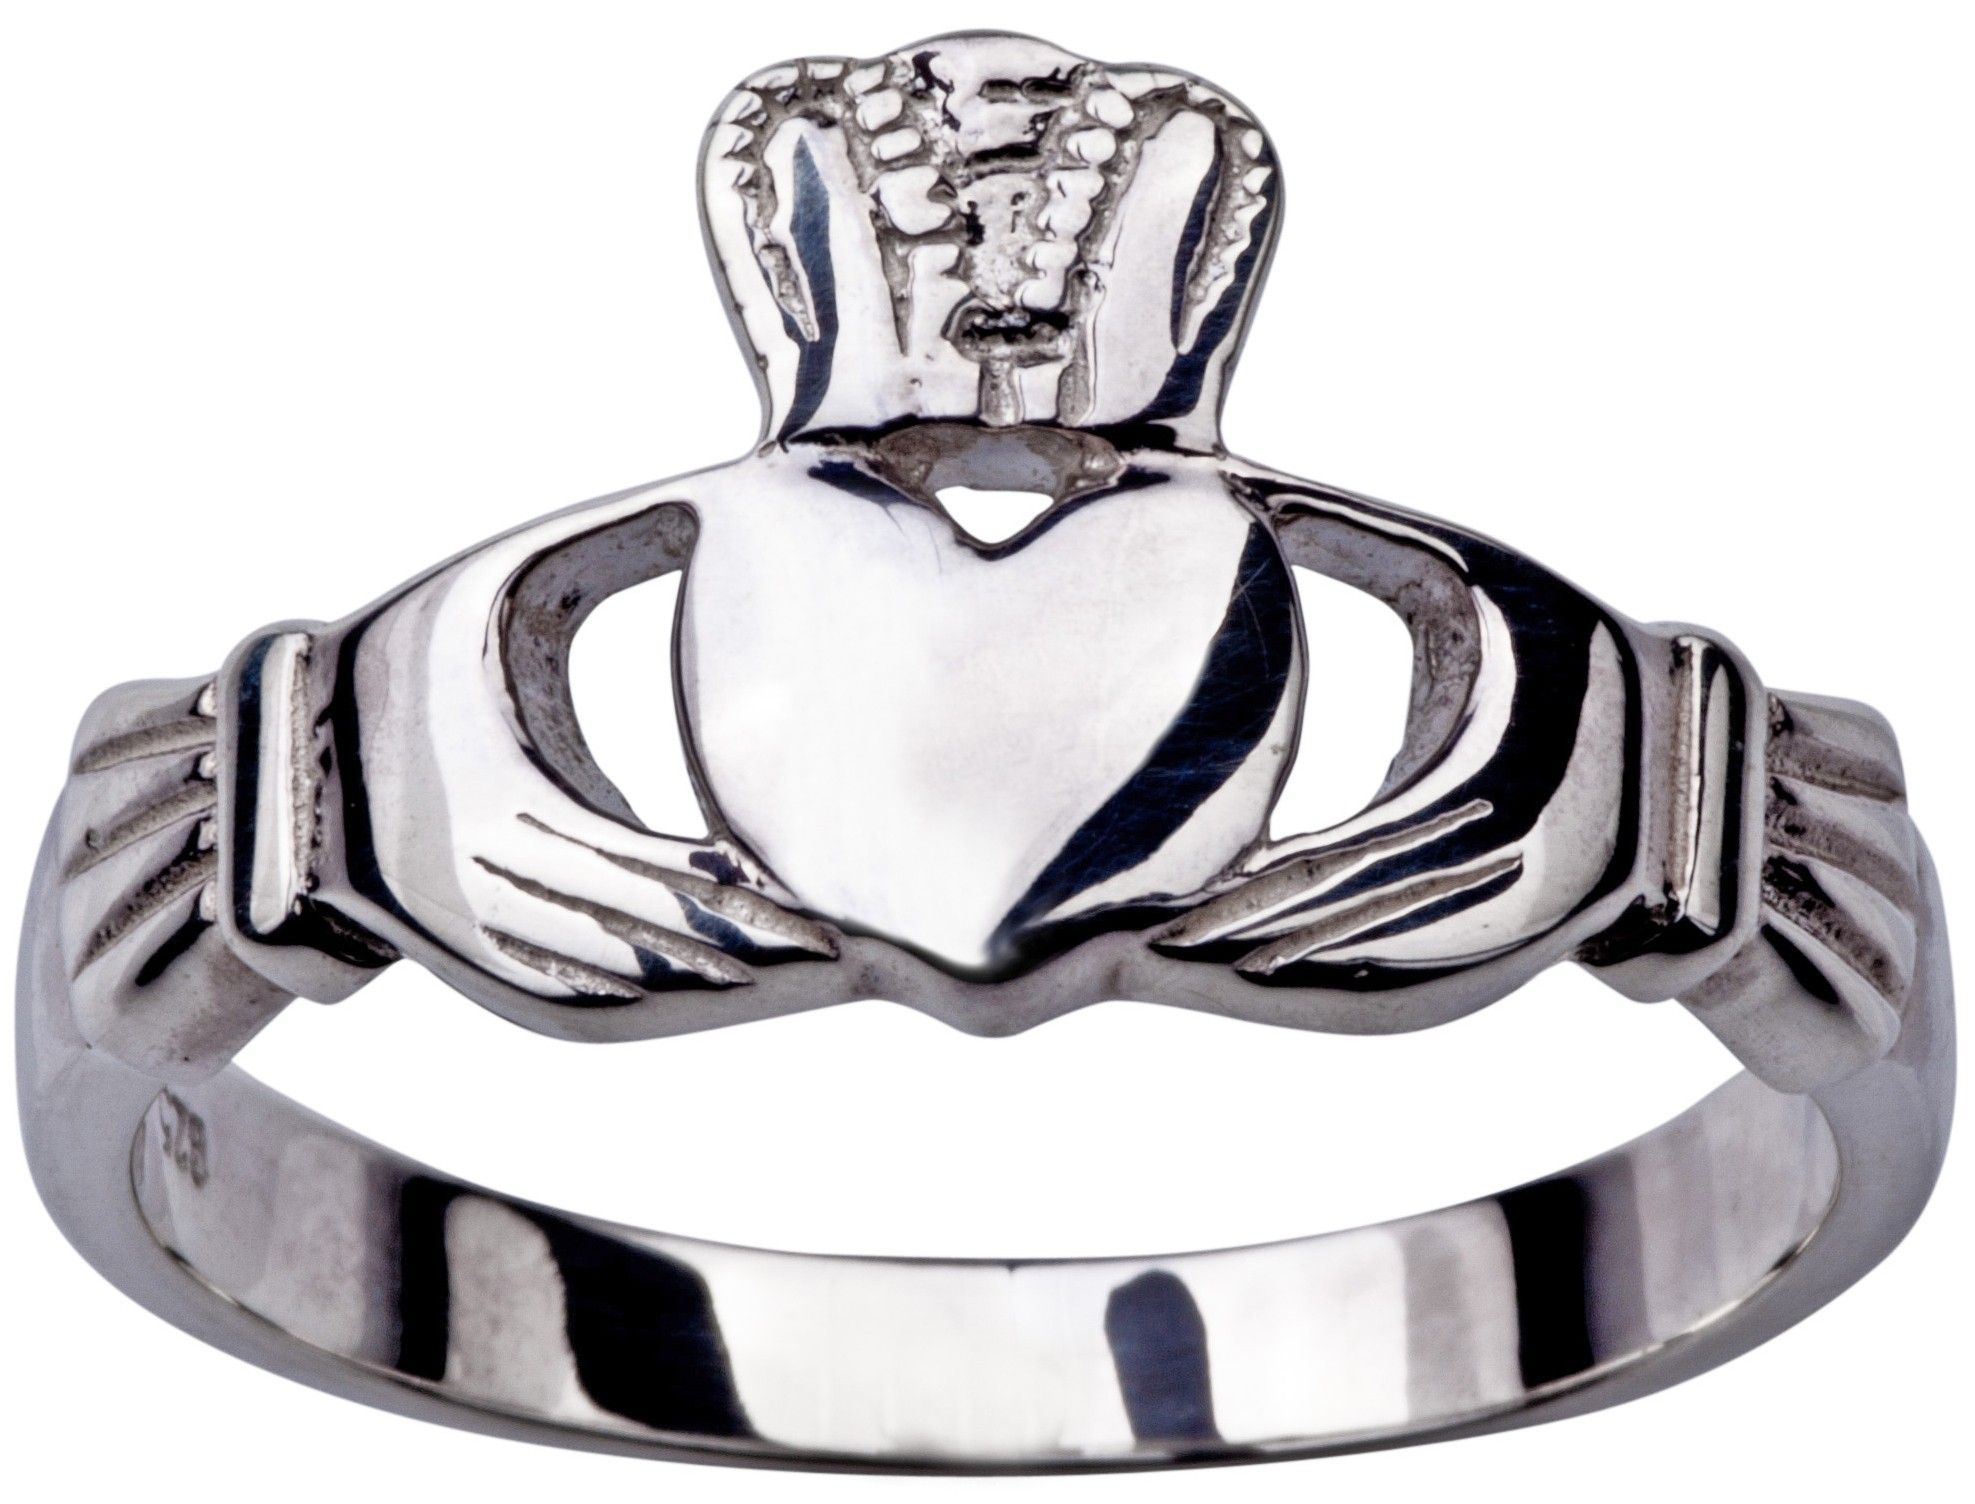 Jamie gives Rob a Claddagh Ring for their anniversary